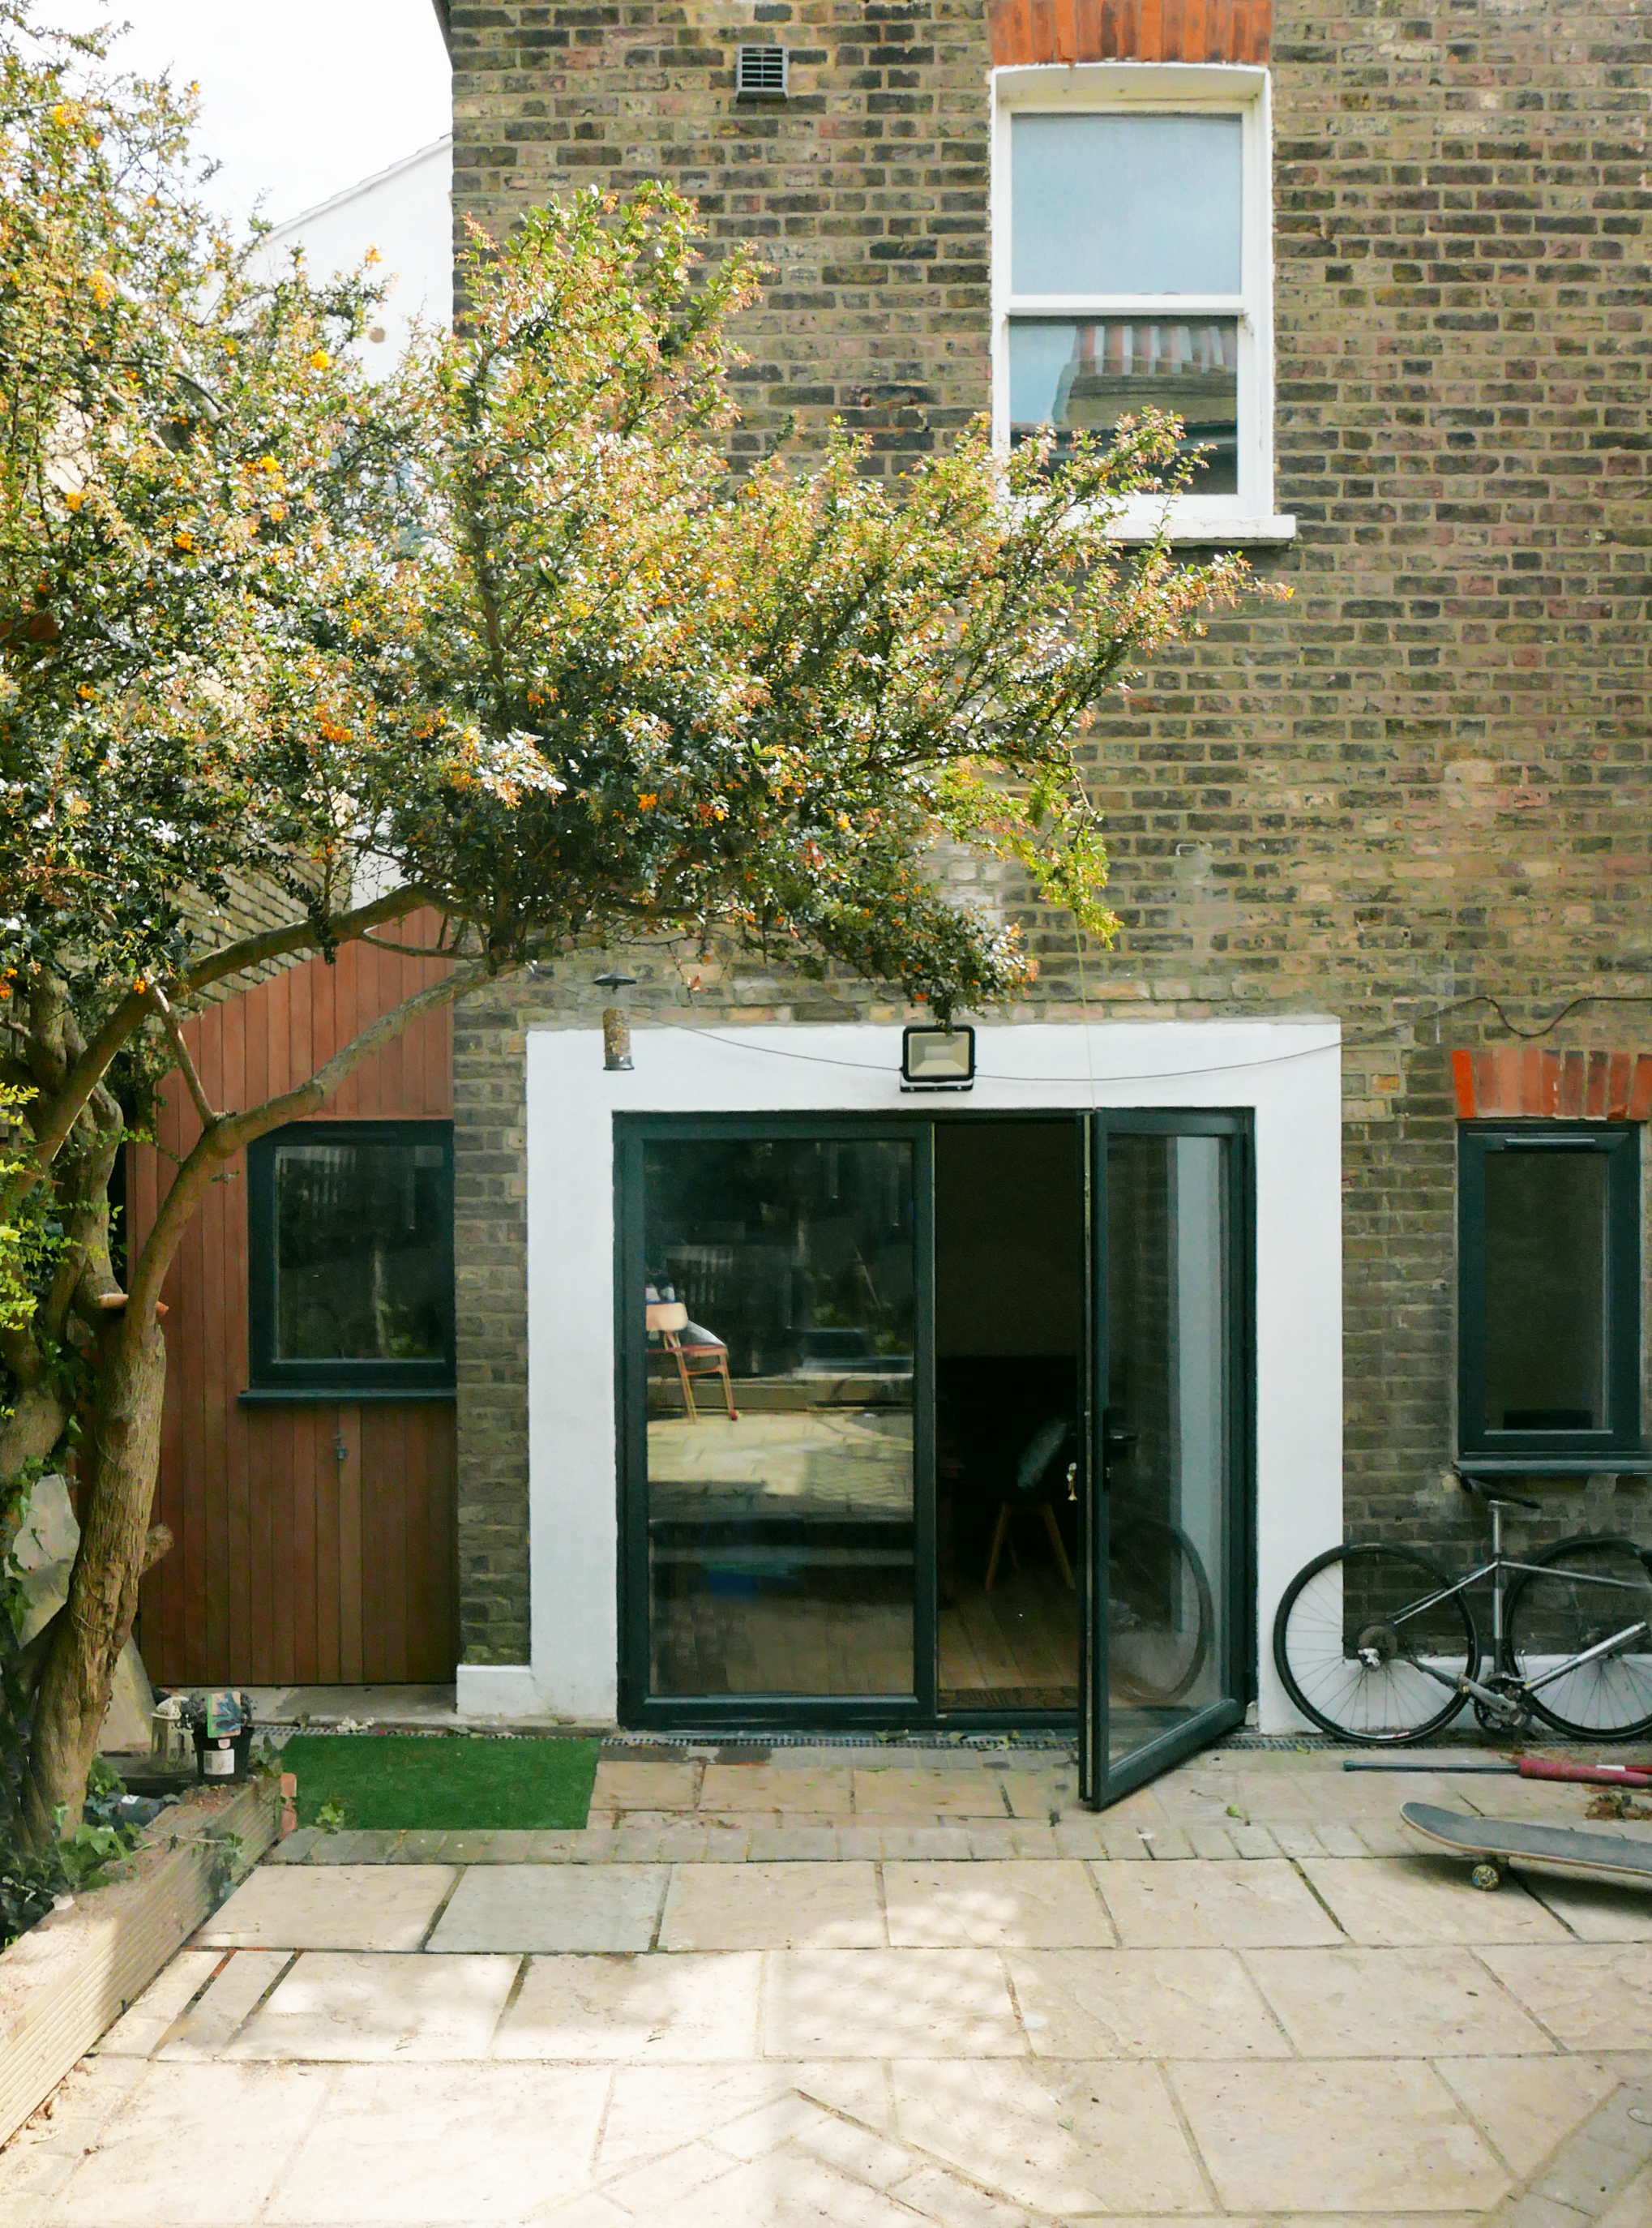 Orford Road Side Infill Rear Extension Architect E17 Walthamstow Village